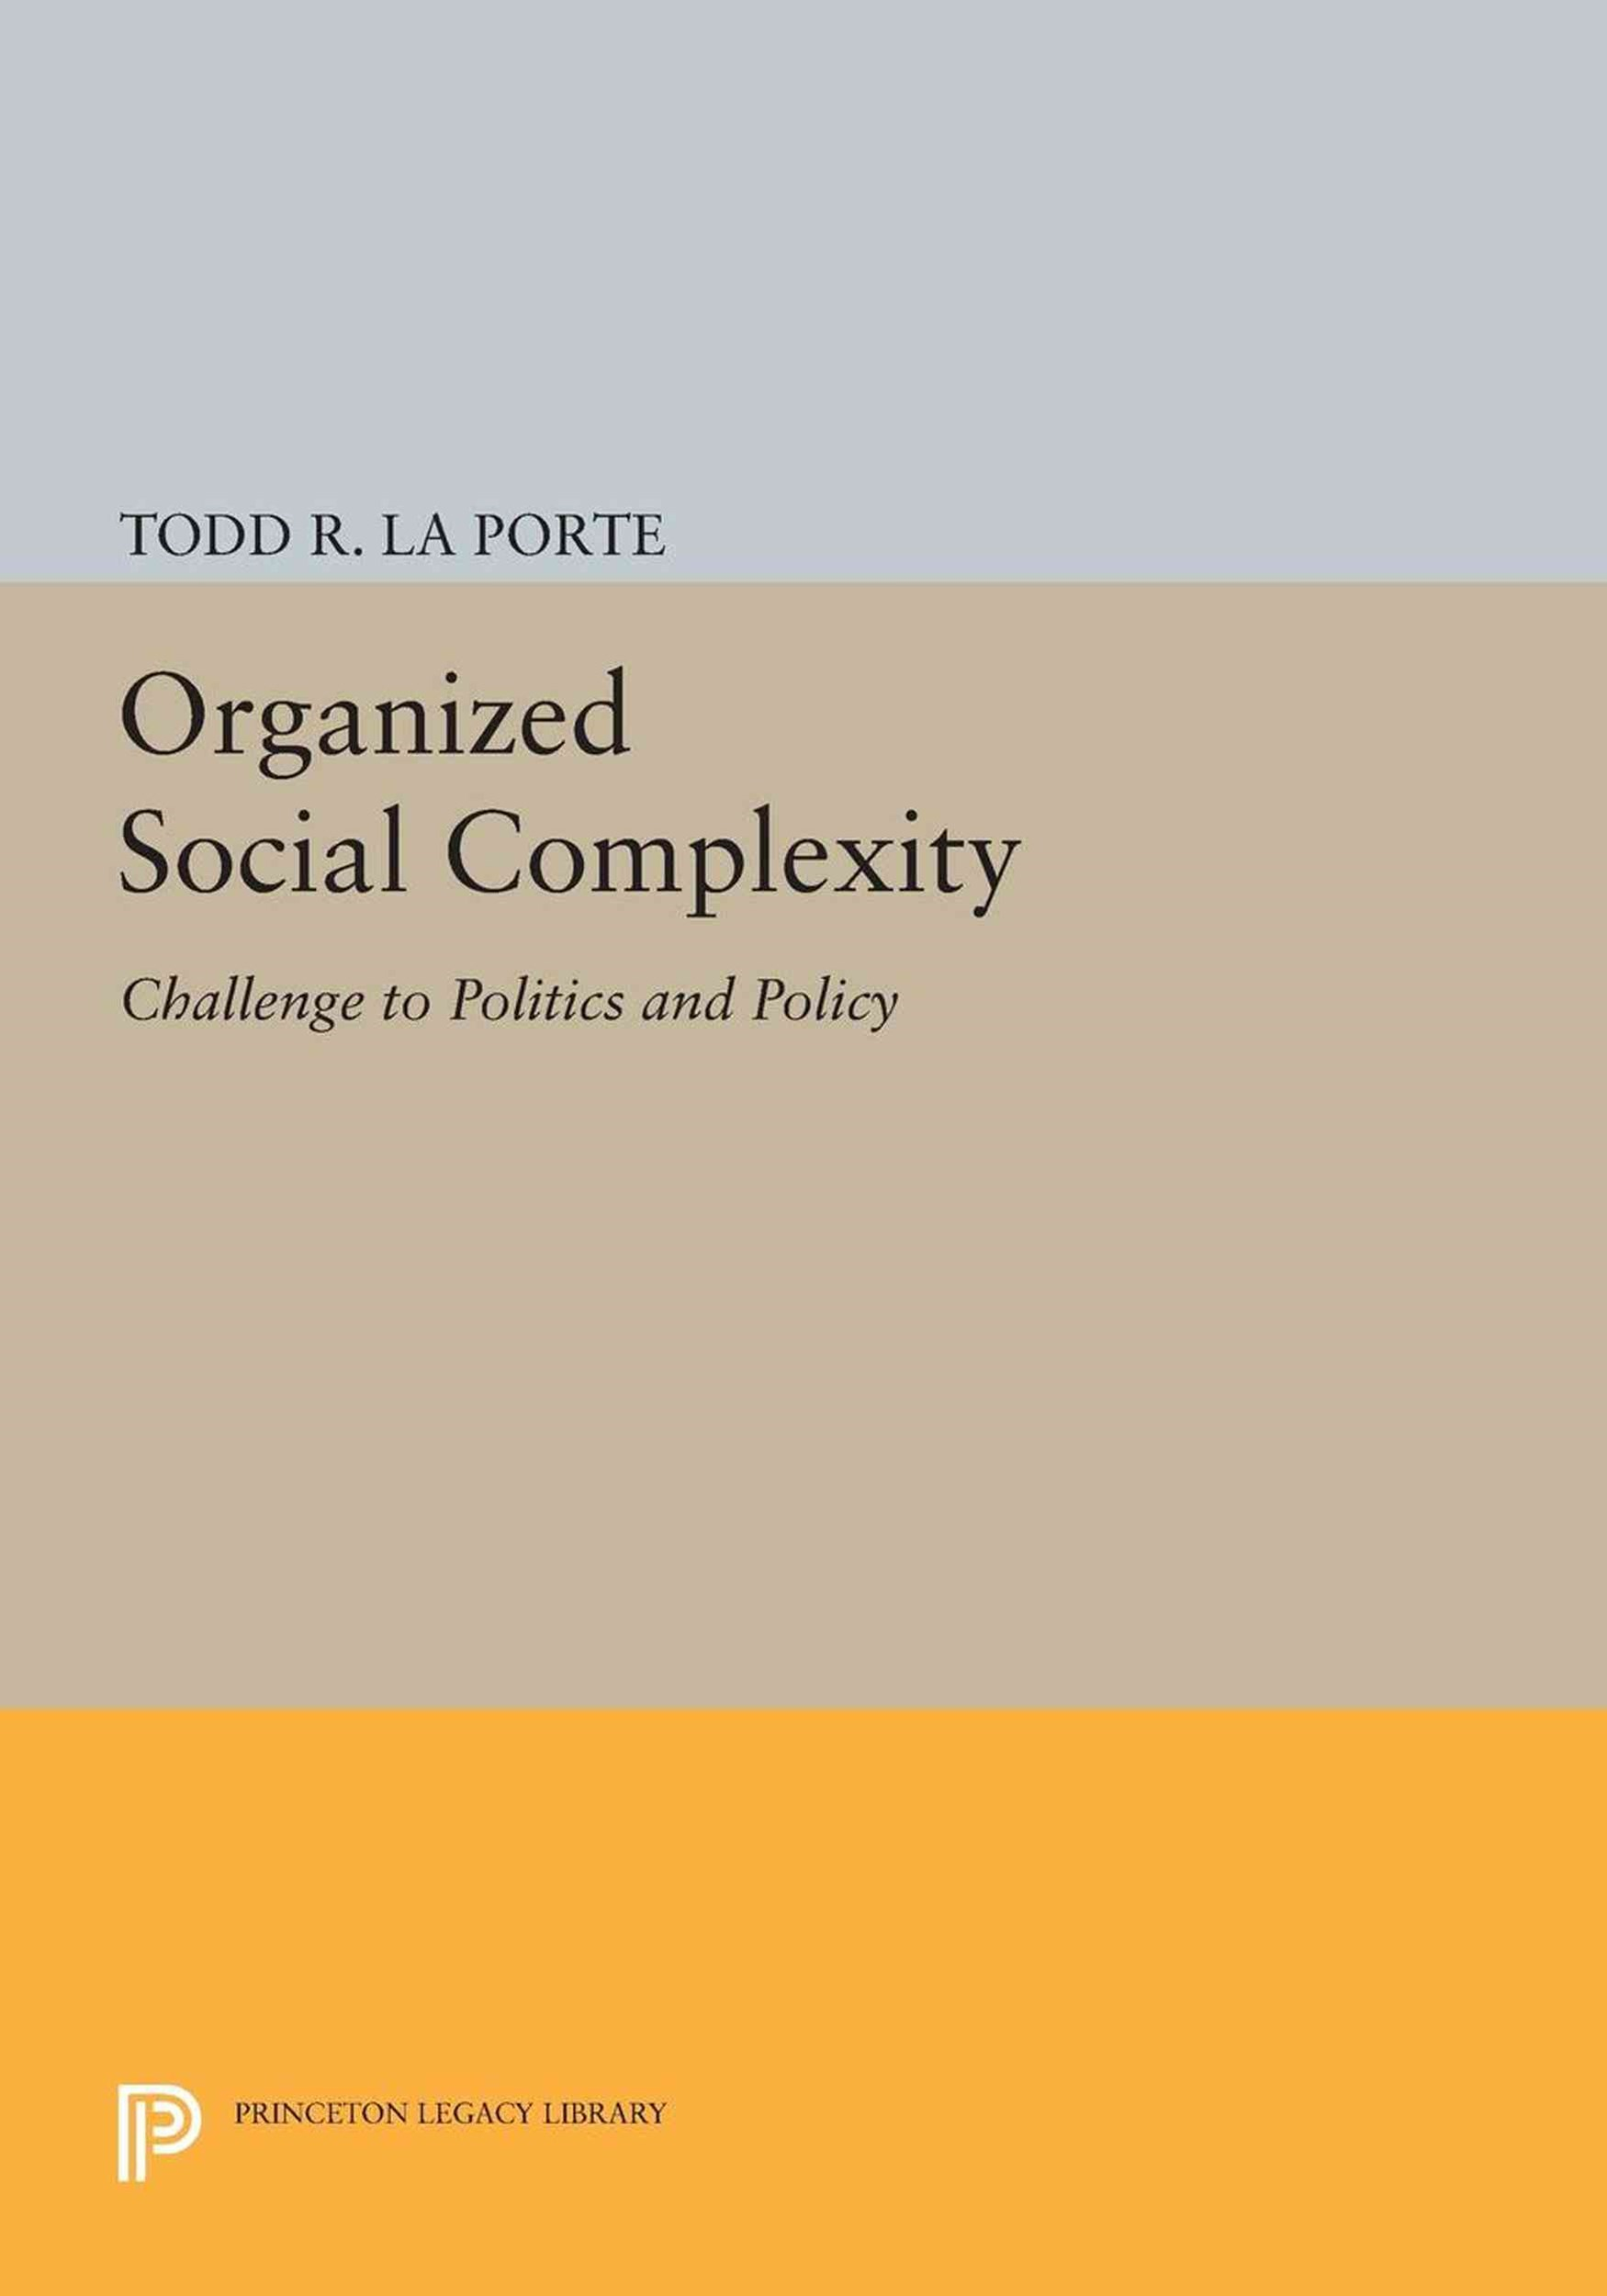 Organized Social Complexity